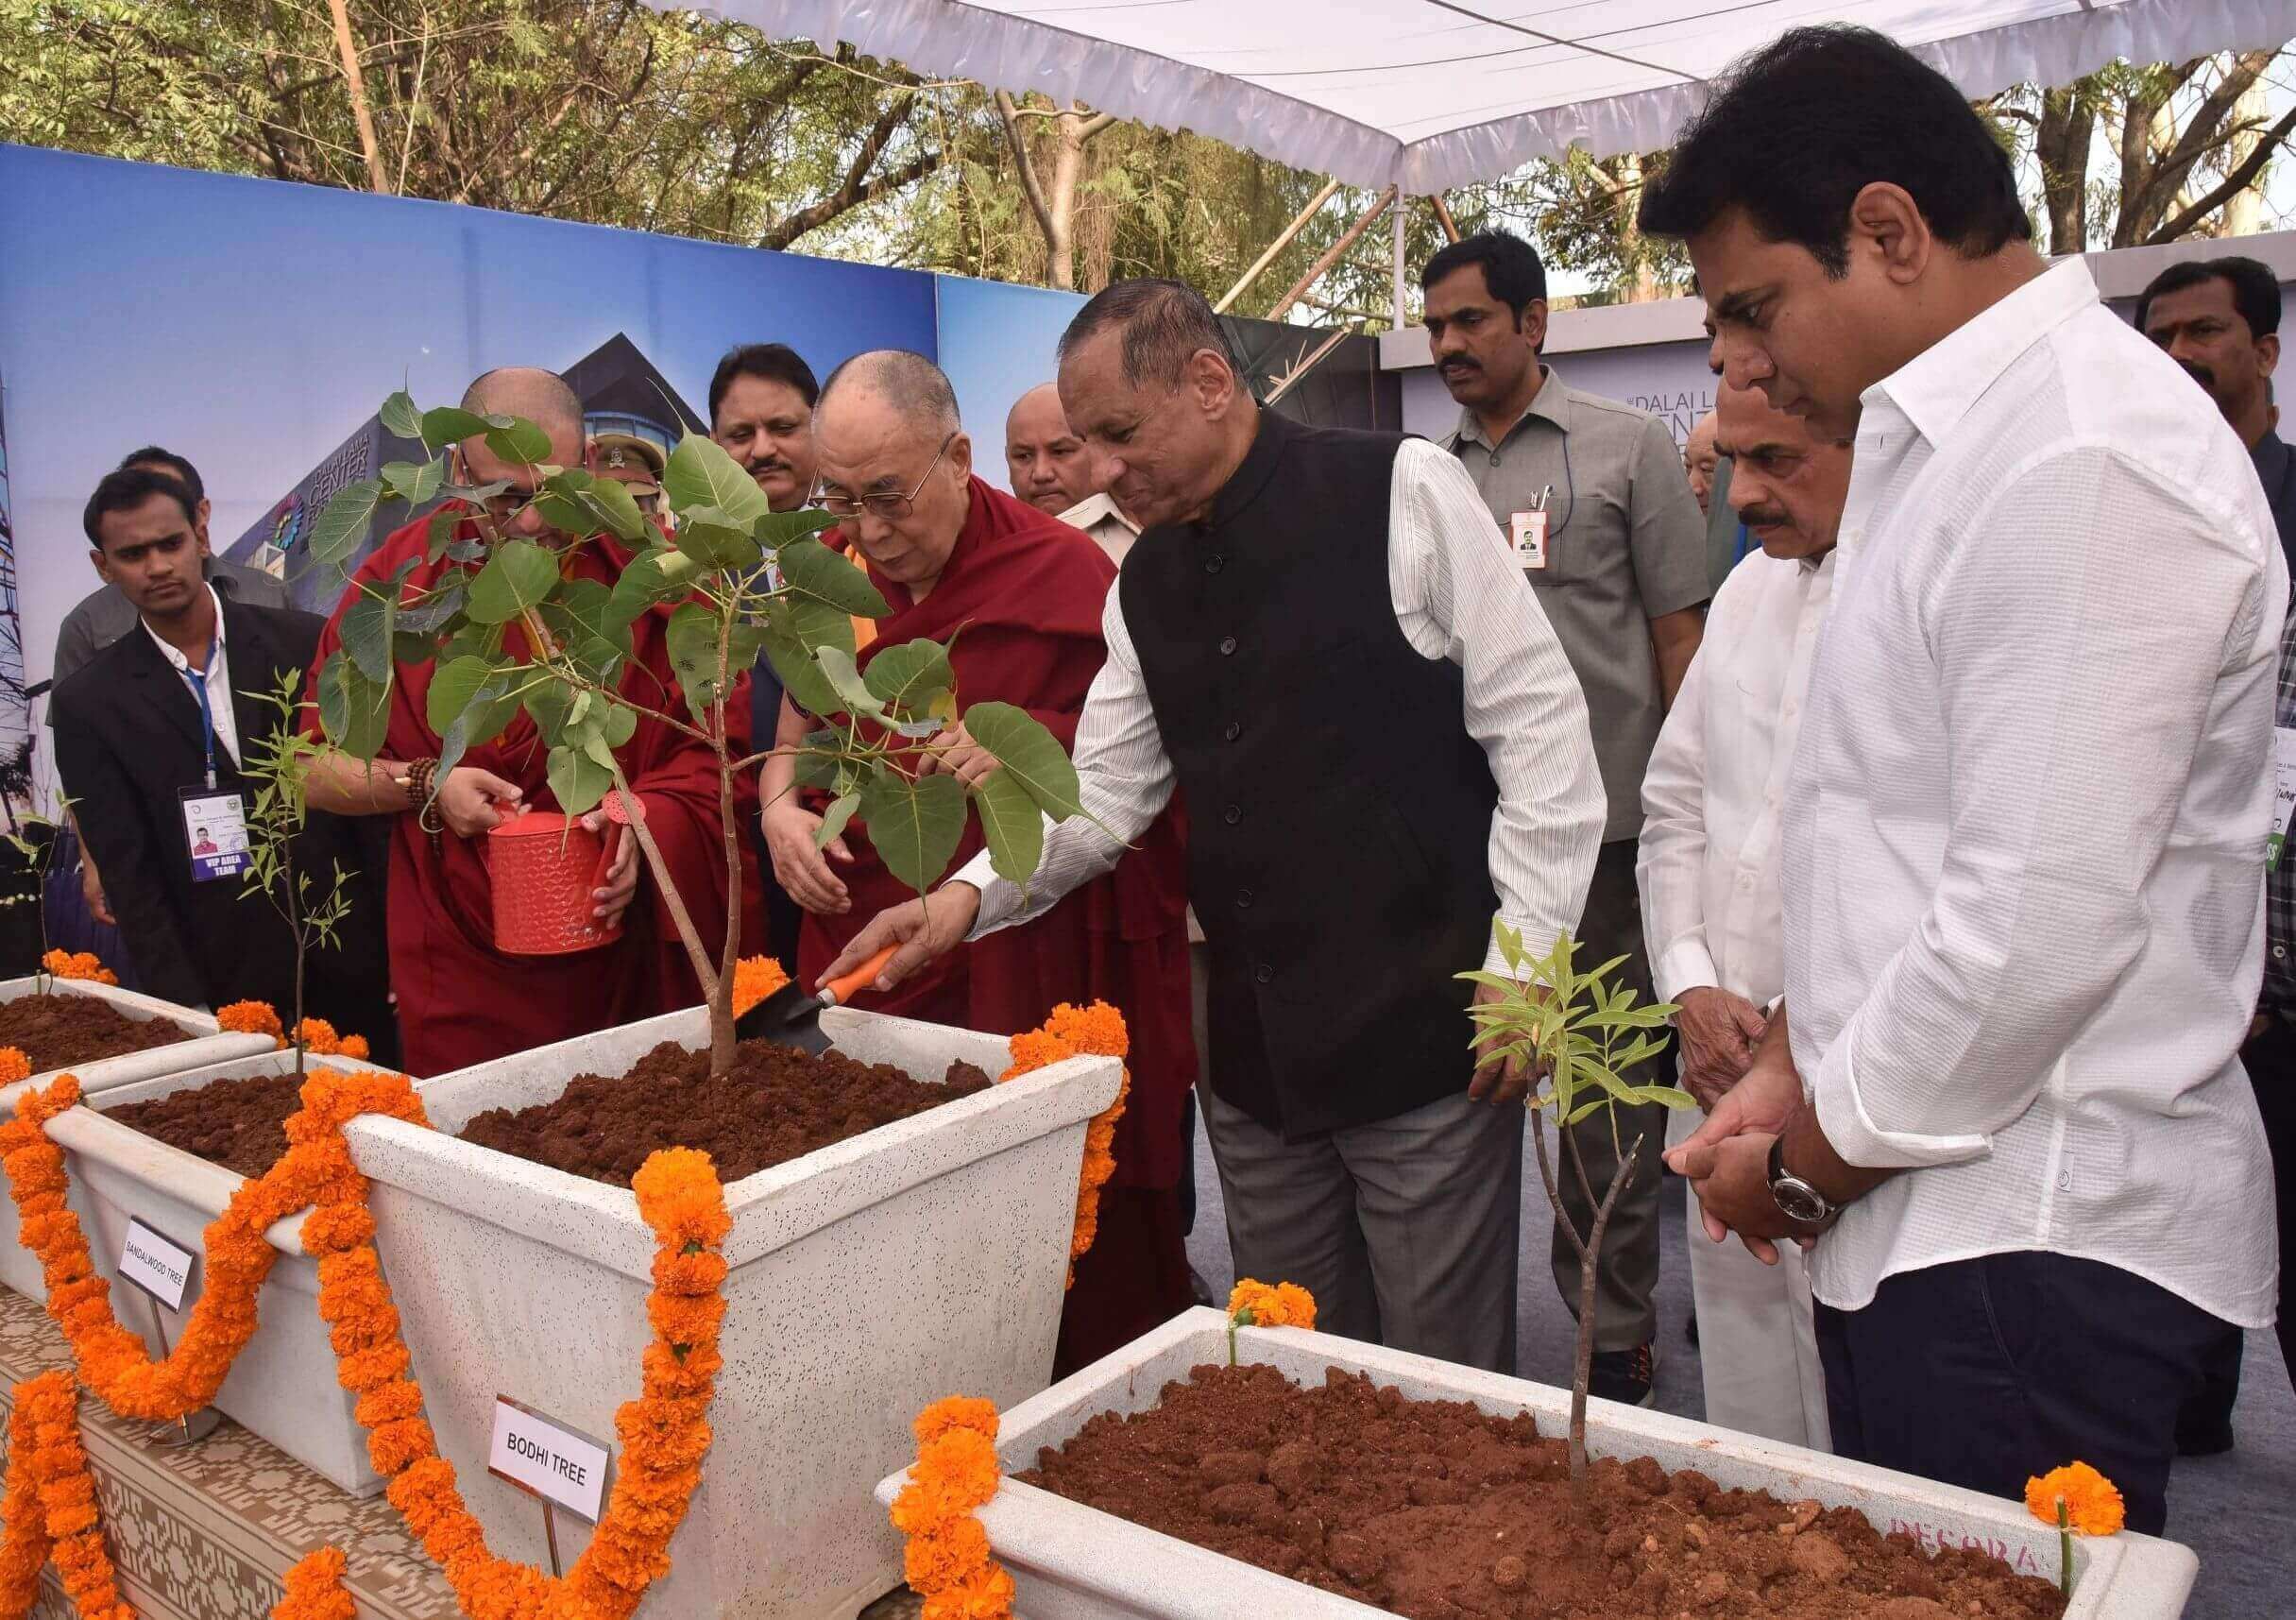 Governor ESL Narasimhan, Telangana Minister KT Rama Rao attends Laying Foundation stone of Dalai Lama Centre, Hyderabad on 12-02-2017.